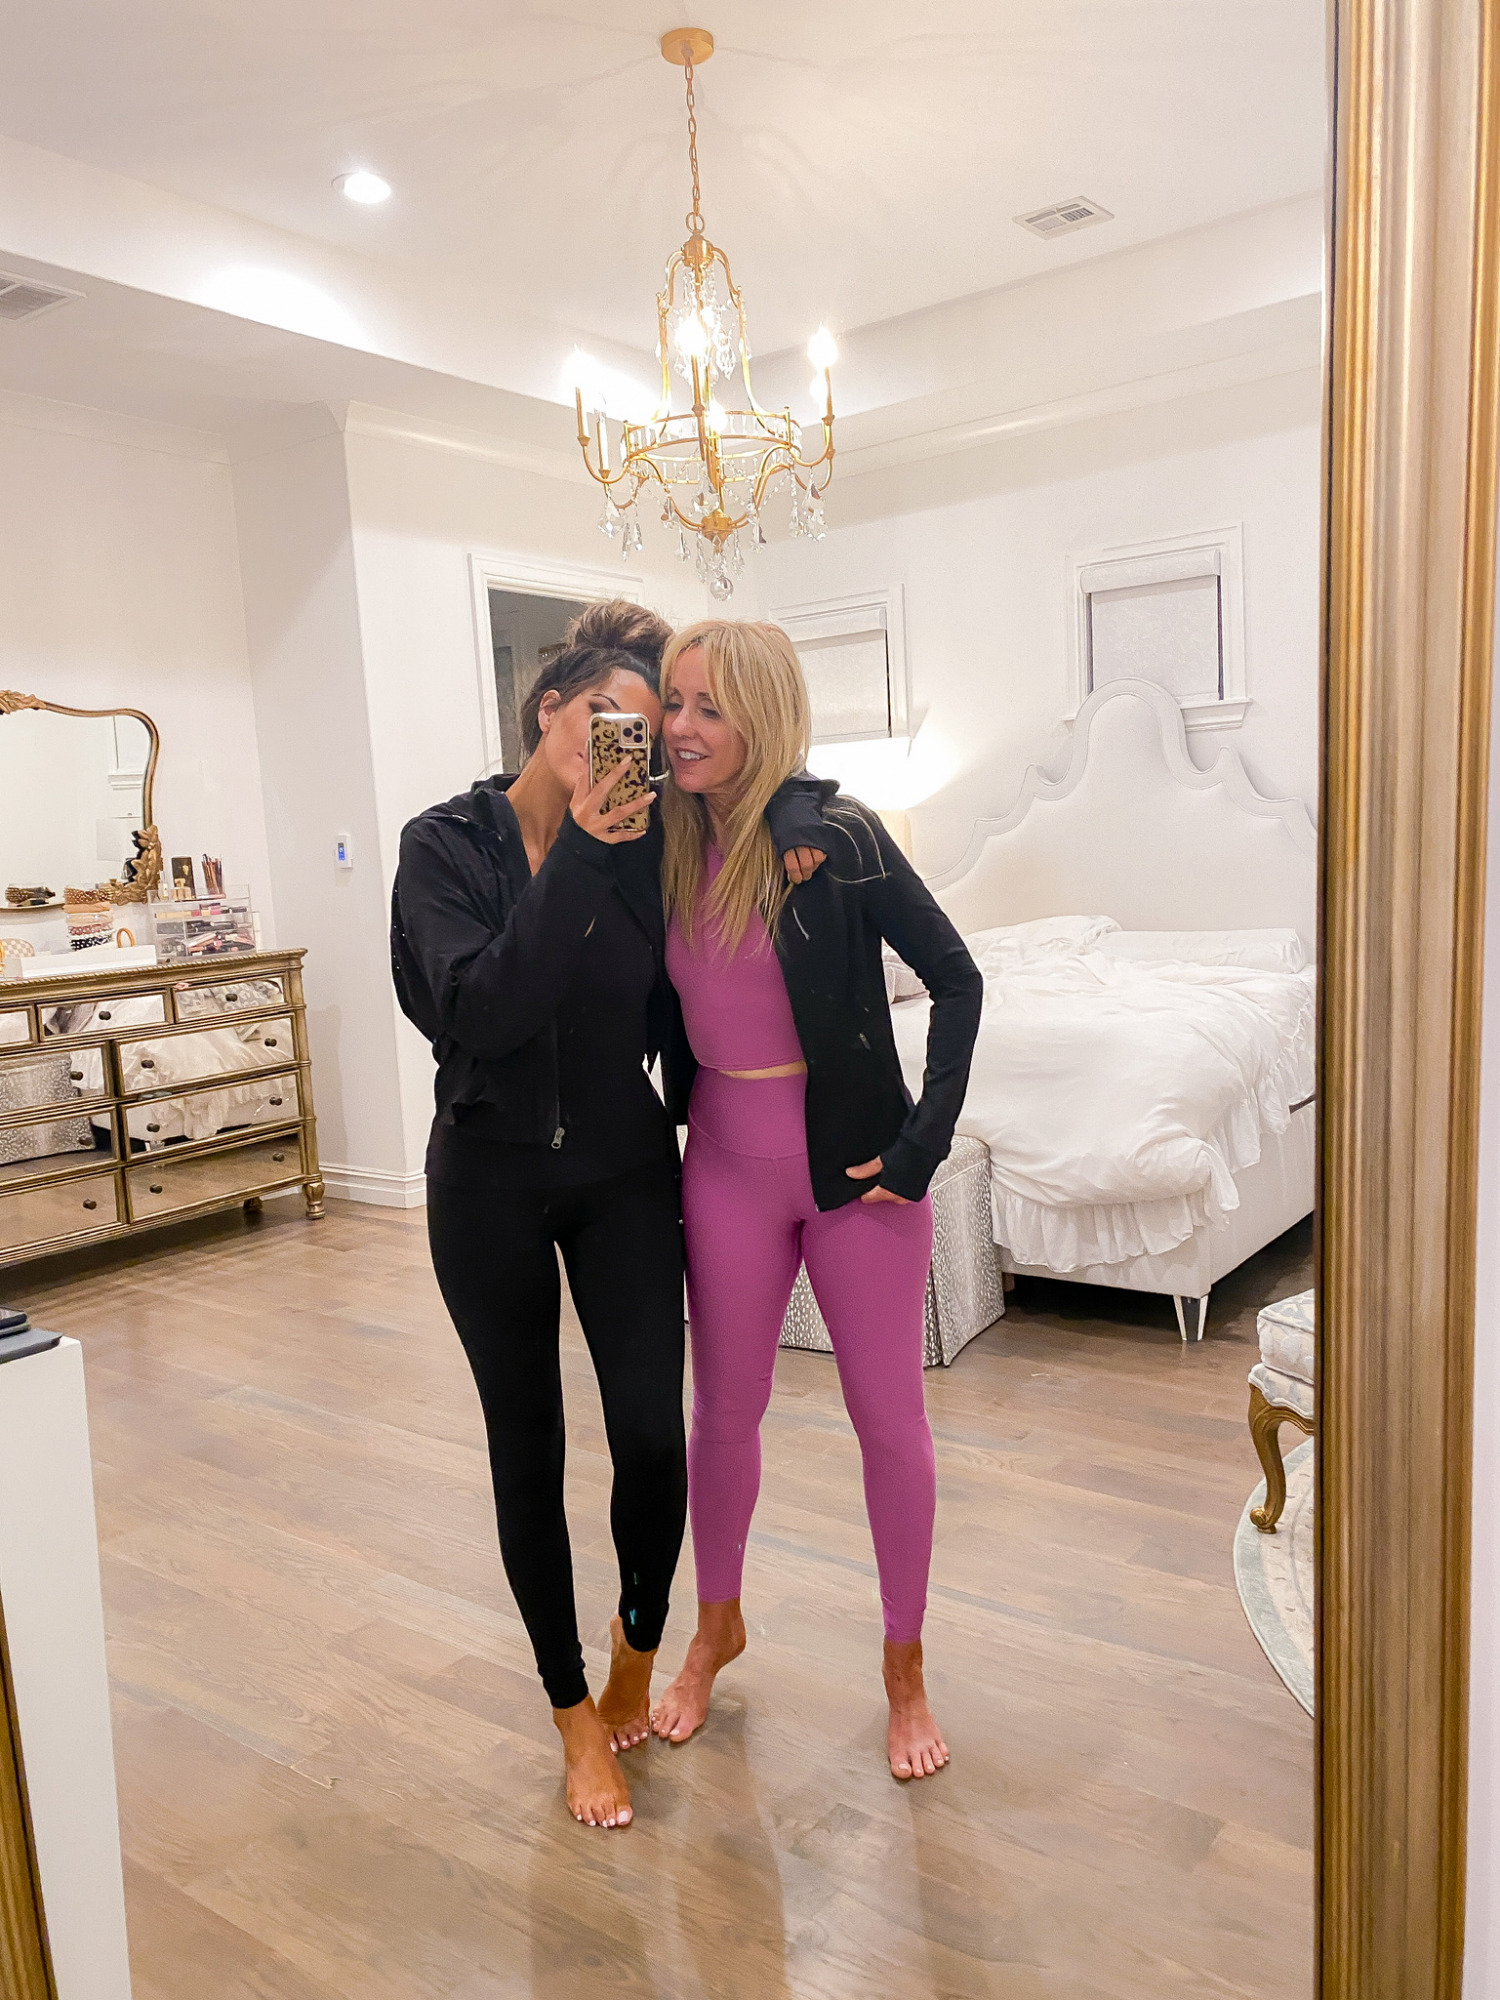 Workout outfits, NSALE 2020, Nordstrom Sale 2020, Athleisure, Emily Ann Gemma  Instagram Recap by popular US life and style blog, The Sweetest Thing: image of Emily Gemma standing with her mom and wearing a Zella jacket, Commando leggings, Alo leggings, and Alo top.